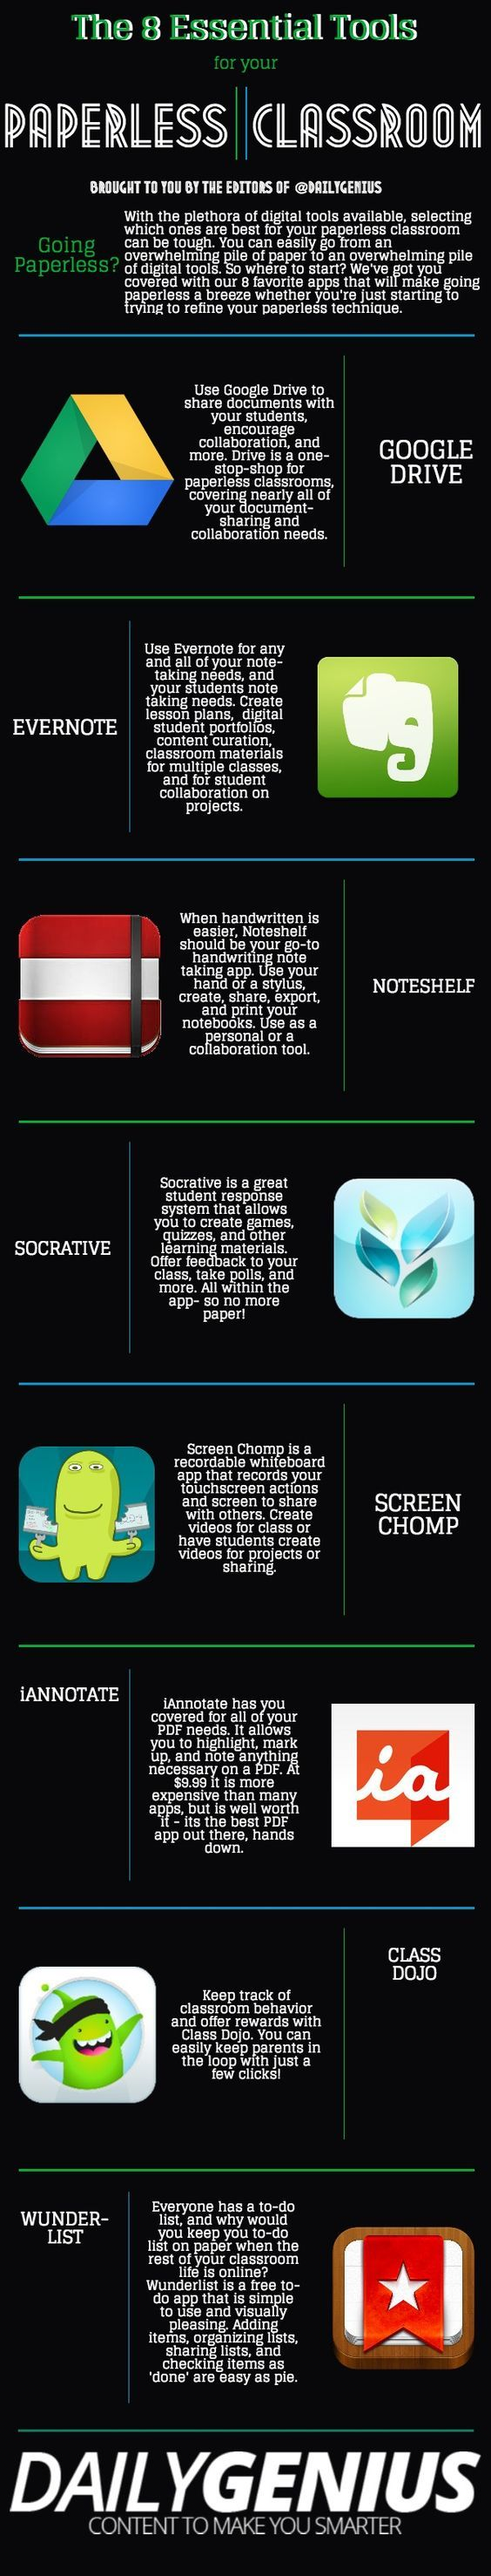 For teachers wanting to go paperless, here is a great list of the tools you'll need to become completely digital!